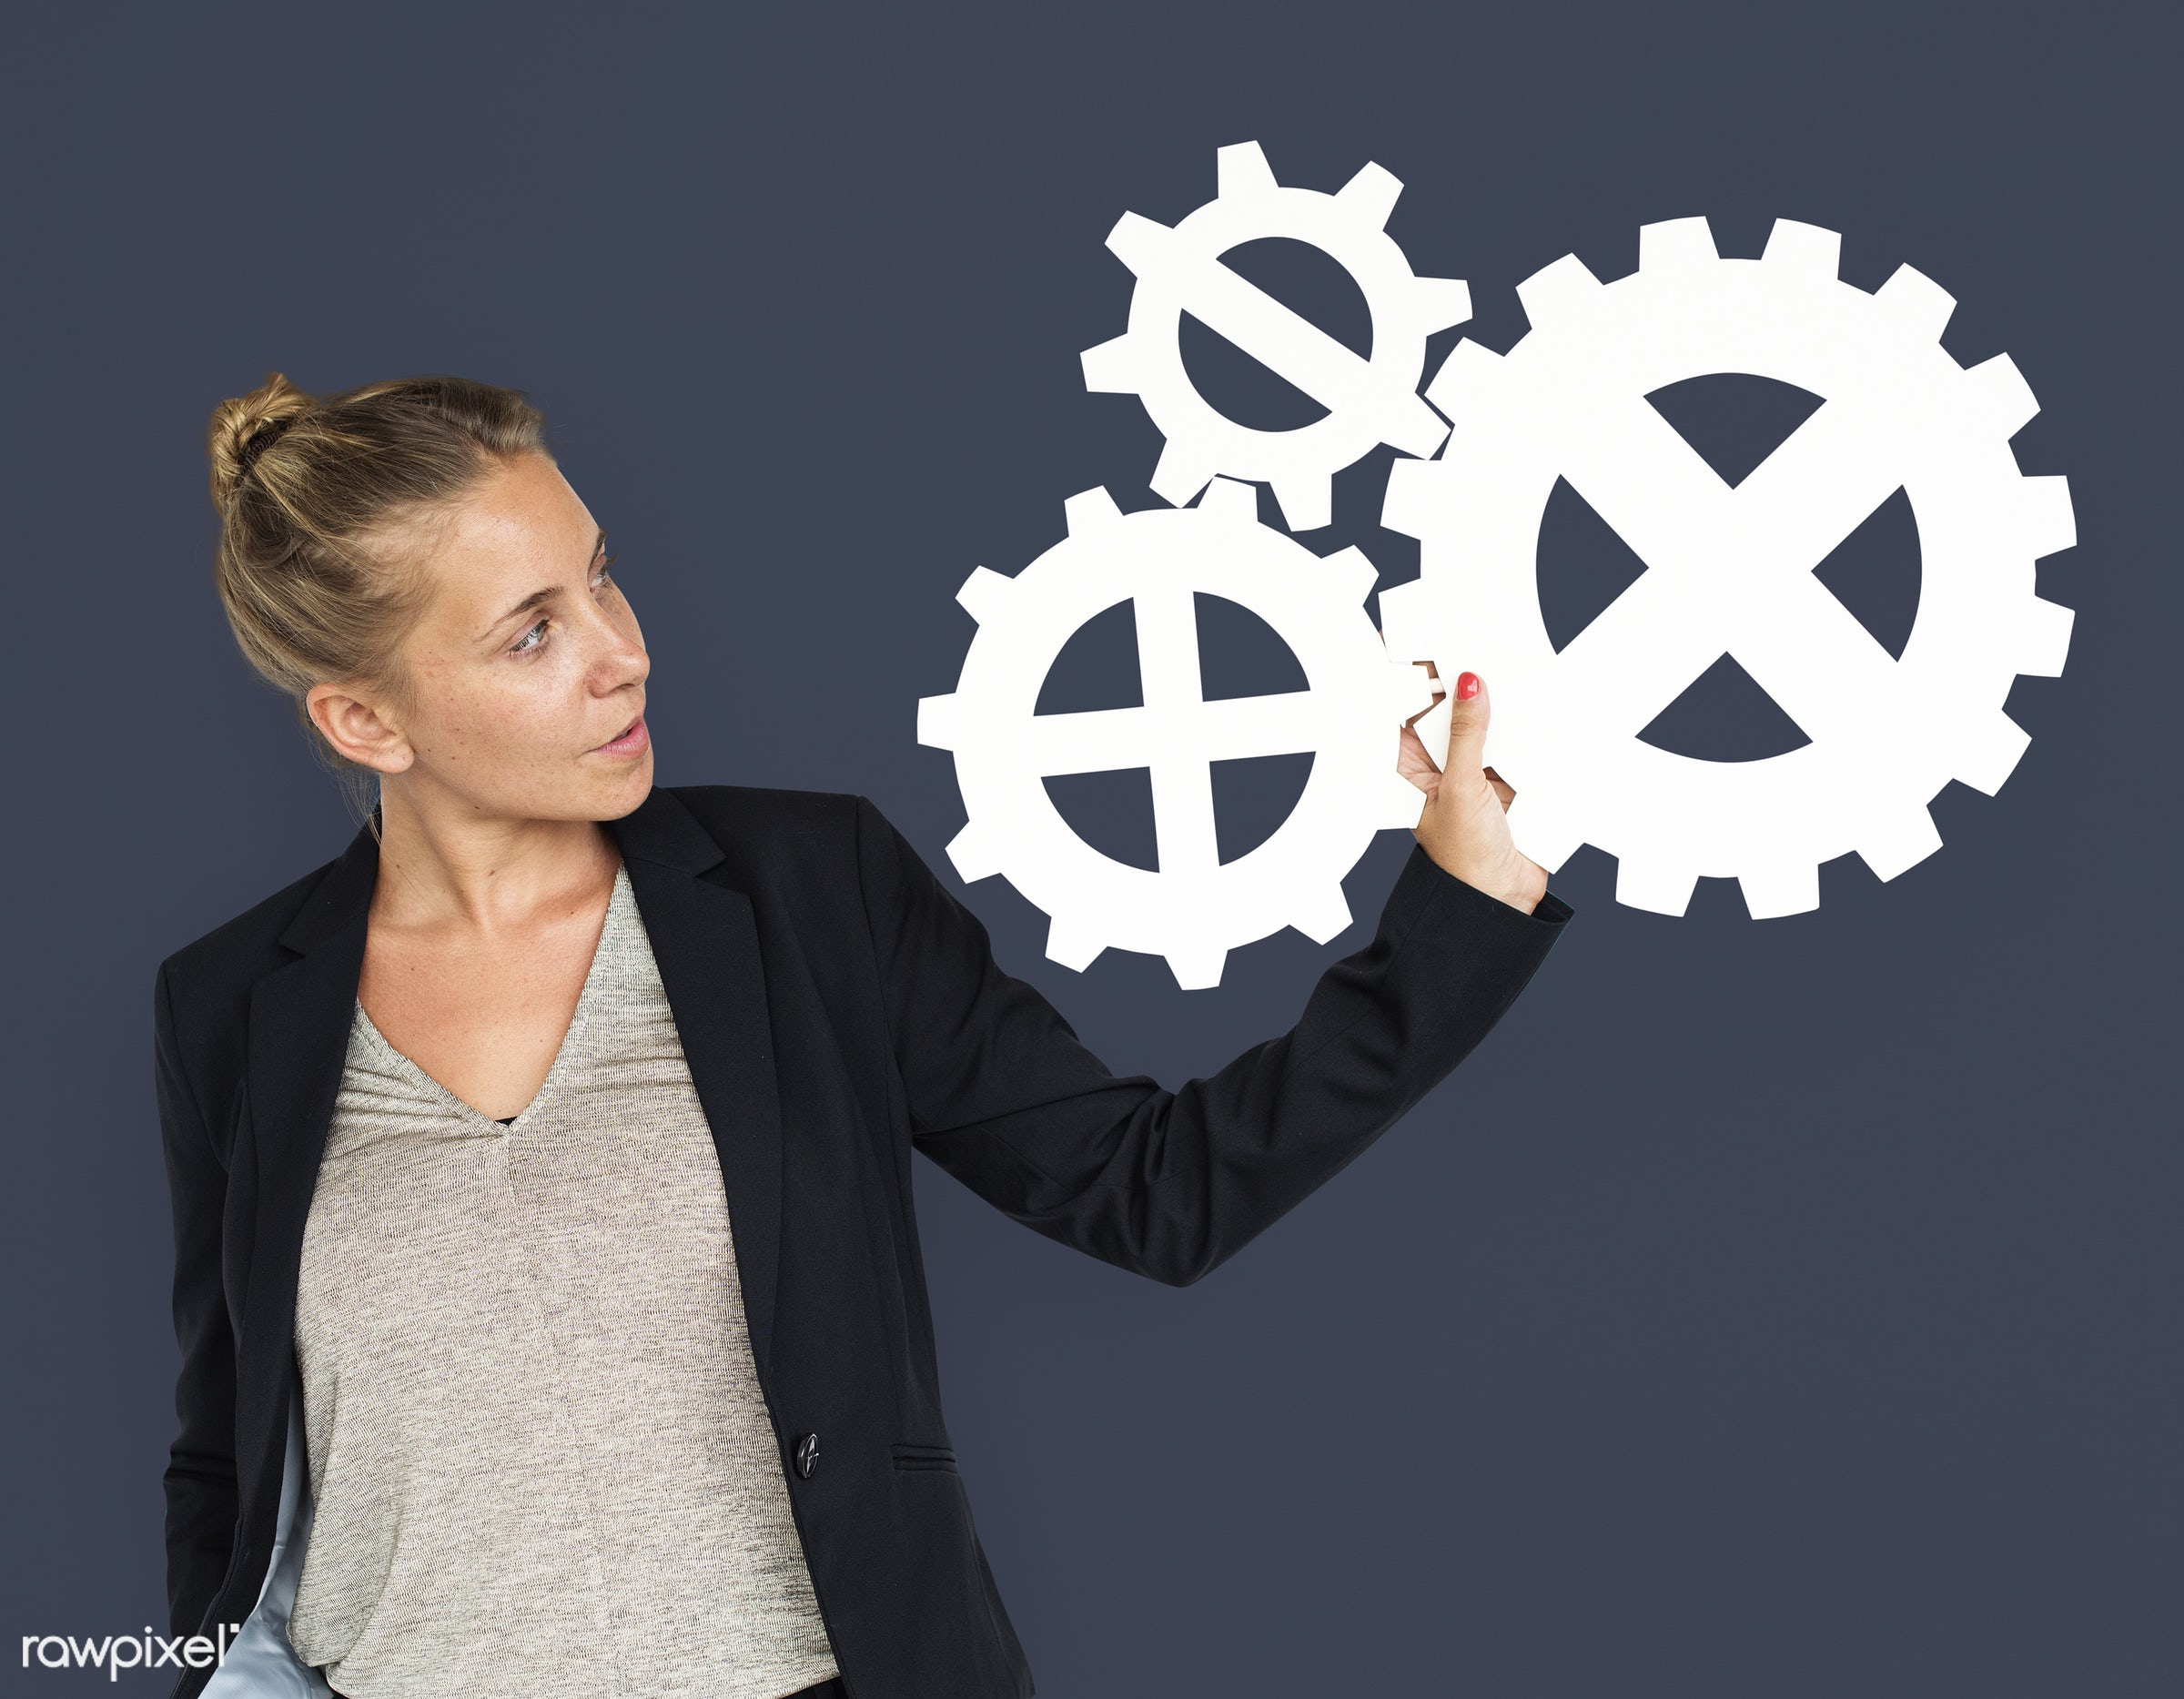 studio, expression, progress, person, holding, people, teamwork, gear, woman, isolated, connection, symbol, engine,...